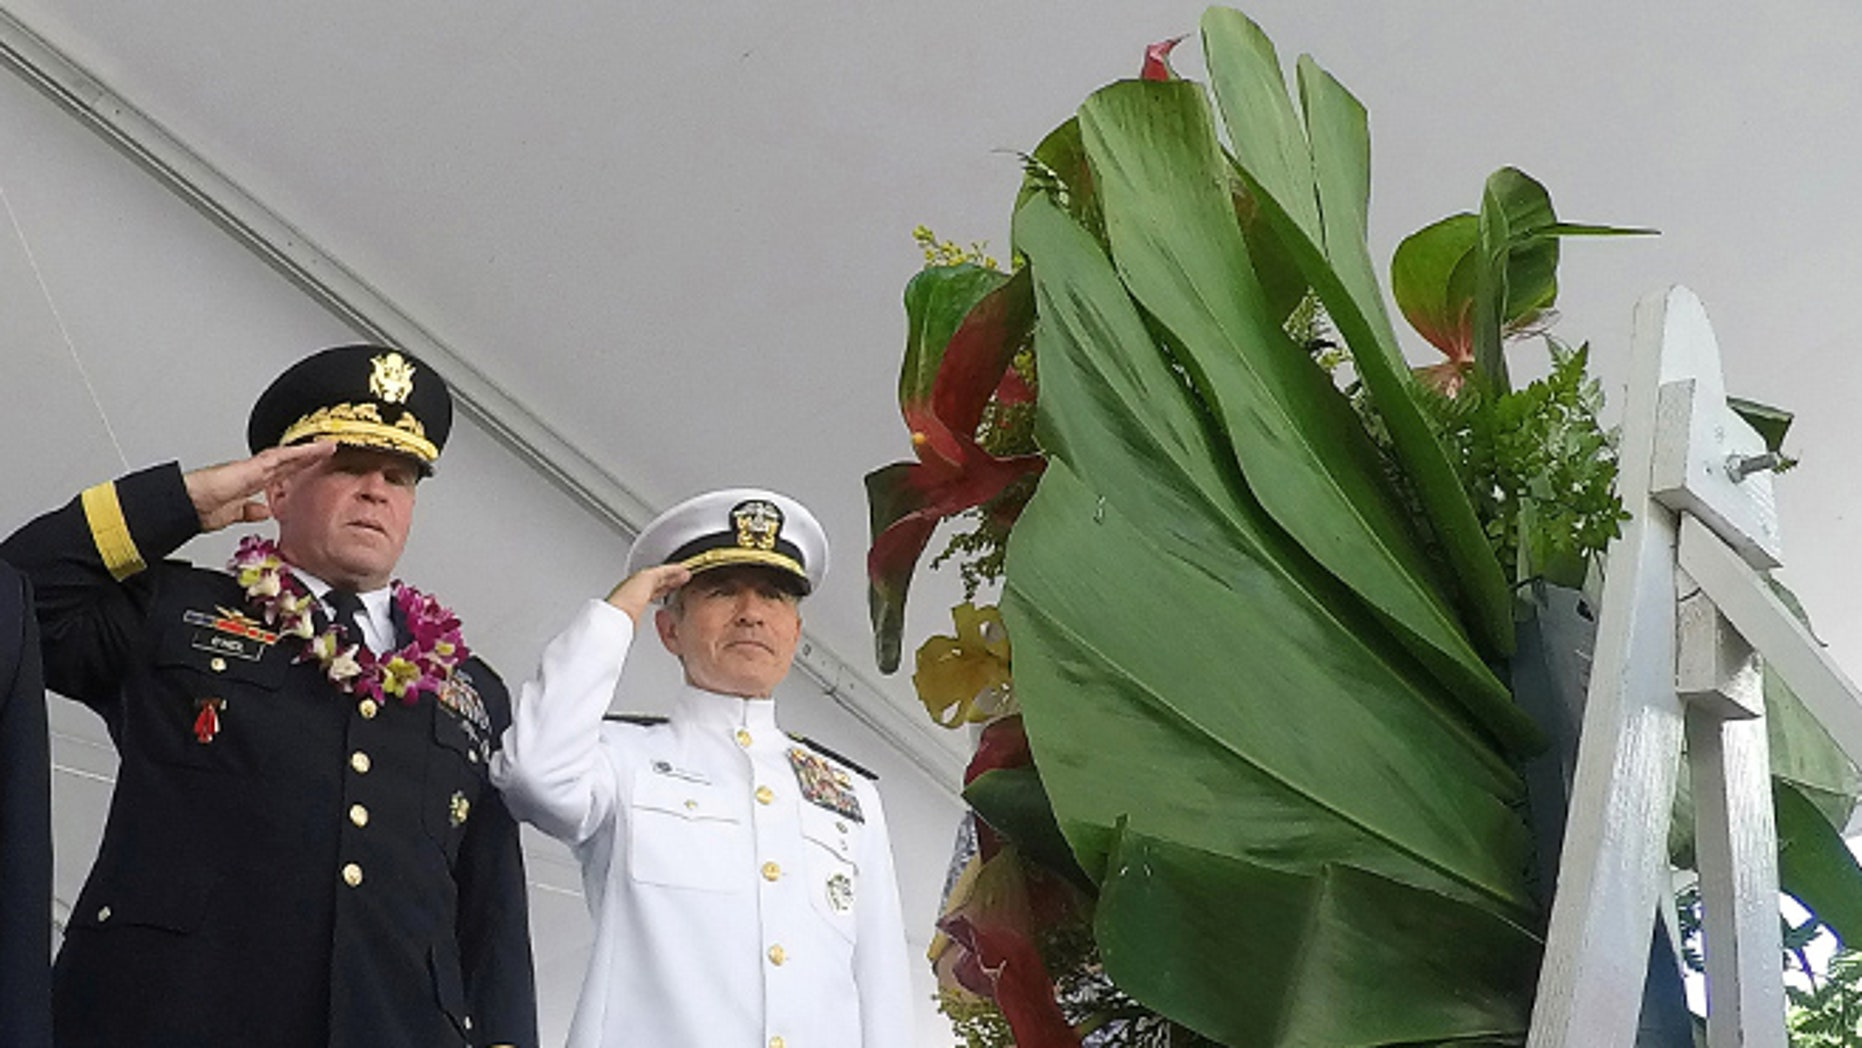 File: Nov. 11, 2016: Army Major General Mark J. O'Neil and Navy Admiral Harry Harris (R) at a Veterans Day ceremony at the National Memorial Cemetery of the Pacific at Punchbowl in Honolulu, Hawaii. (REUTERS)